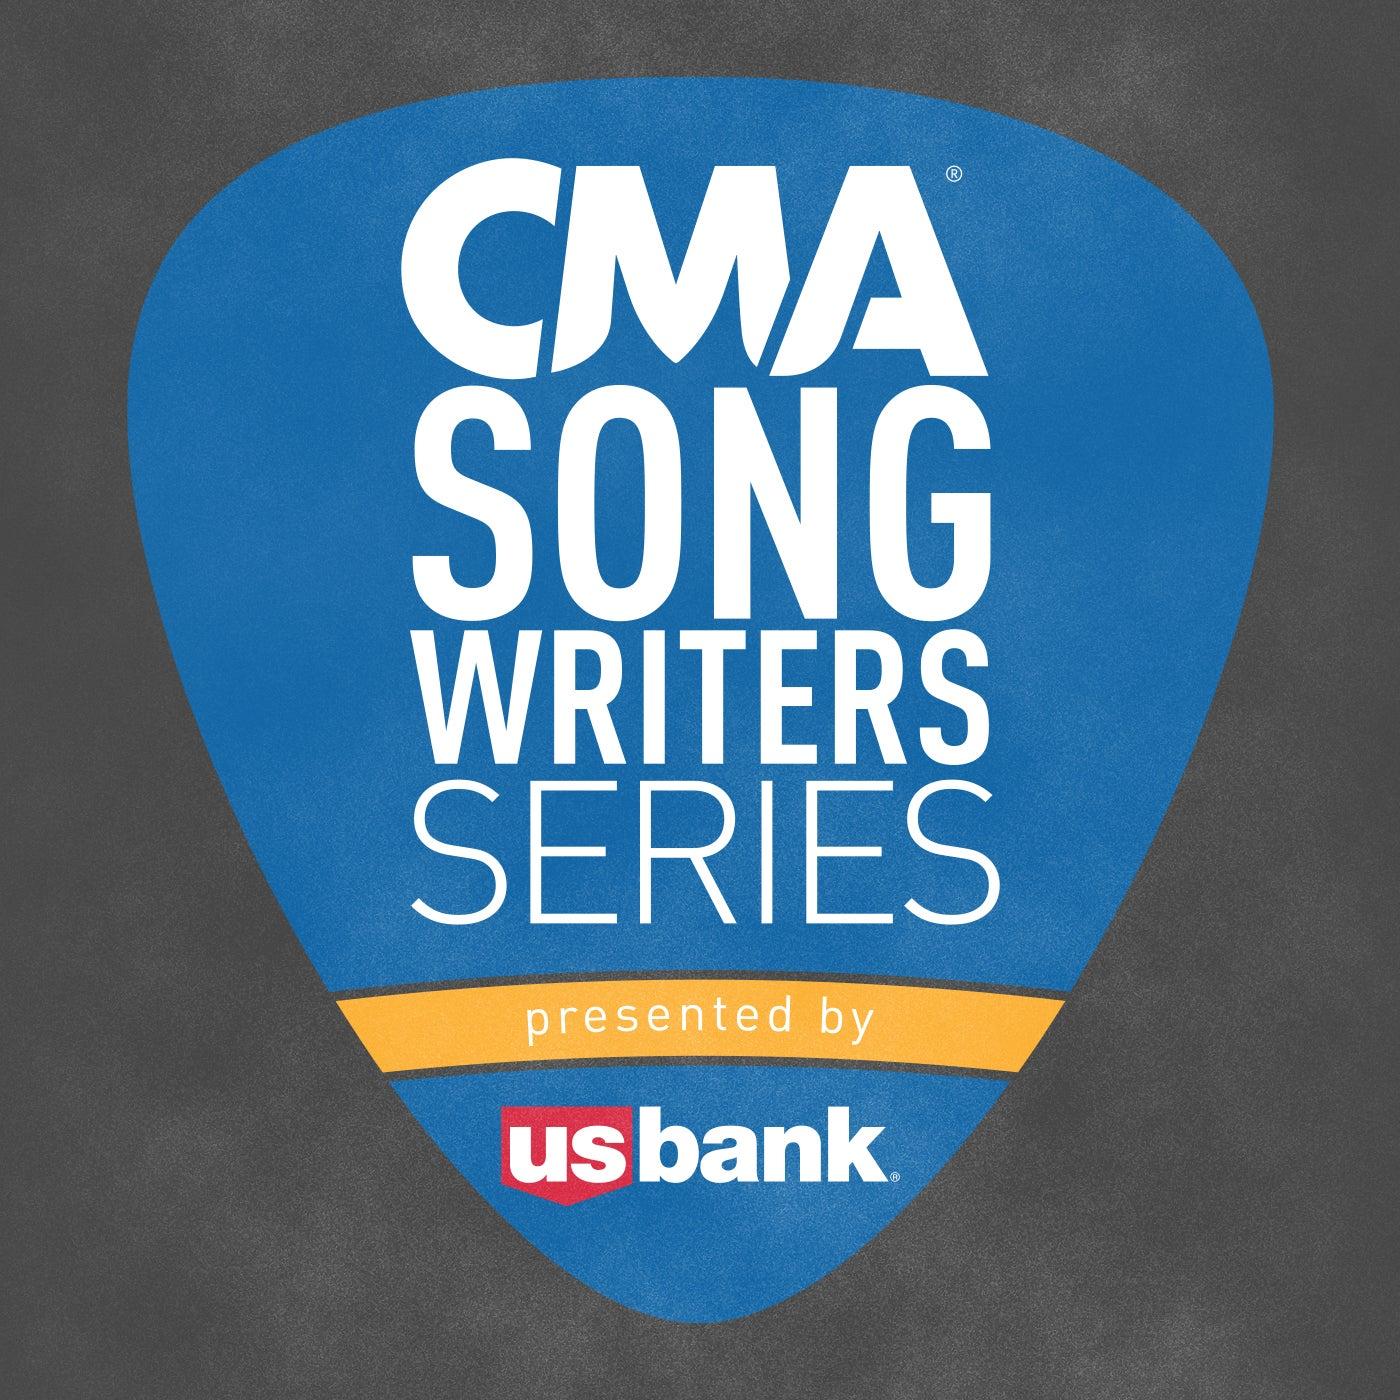 CMA Songwriters Series Presented by U.S. Bank